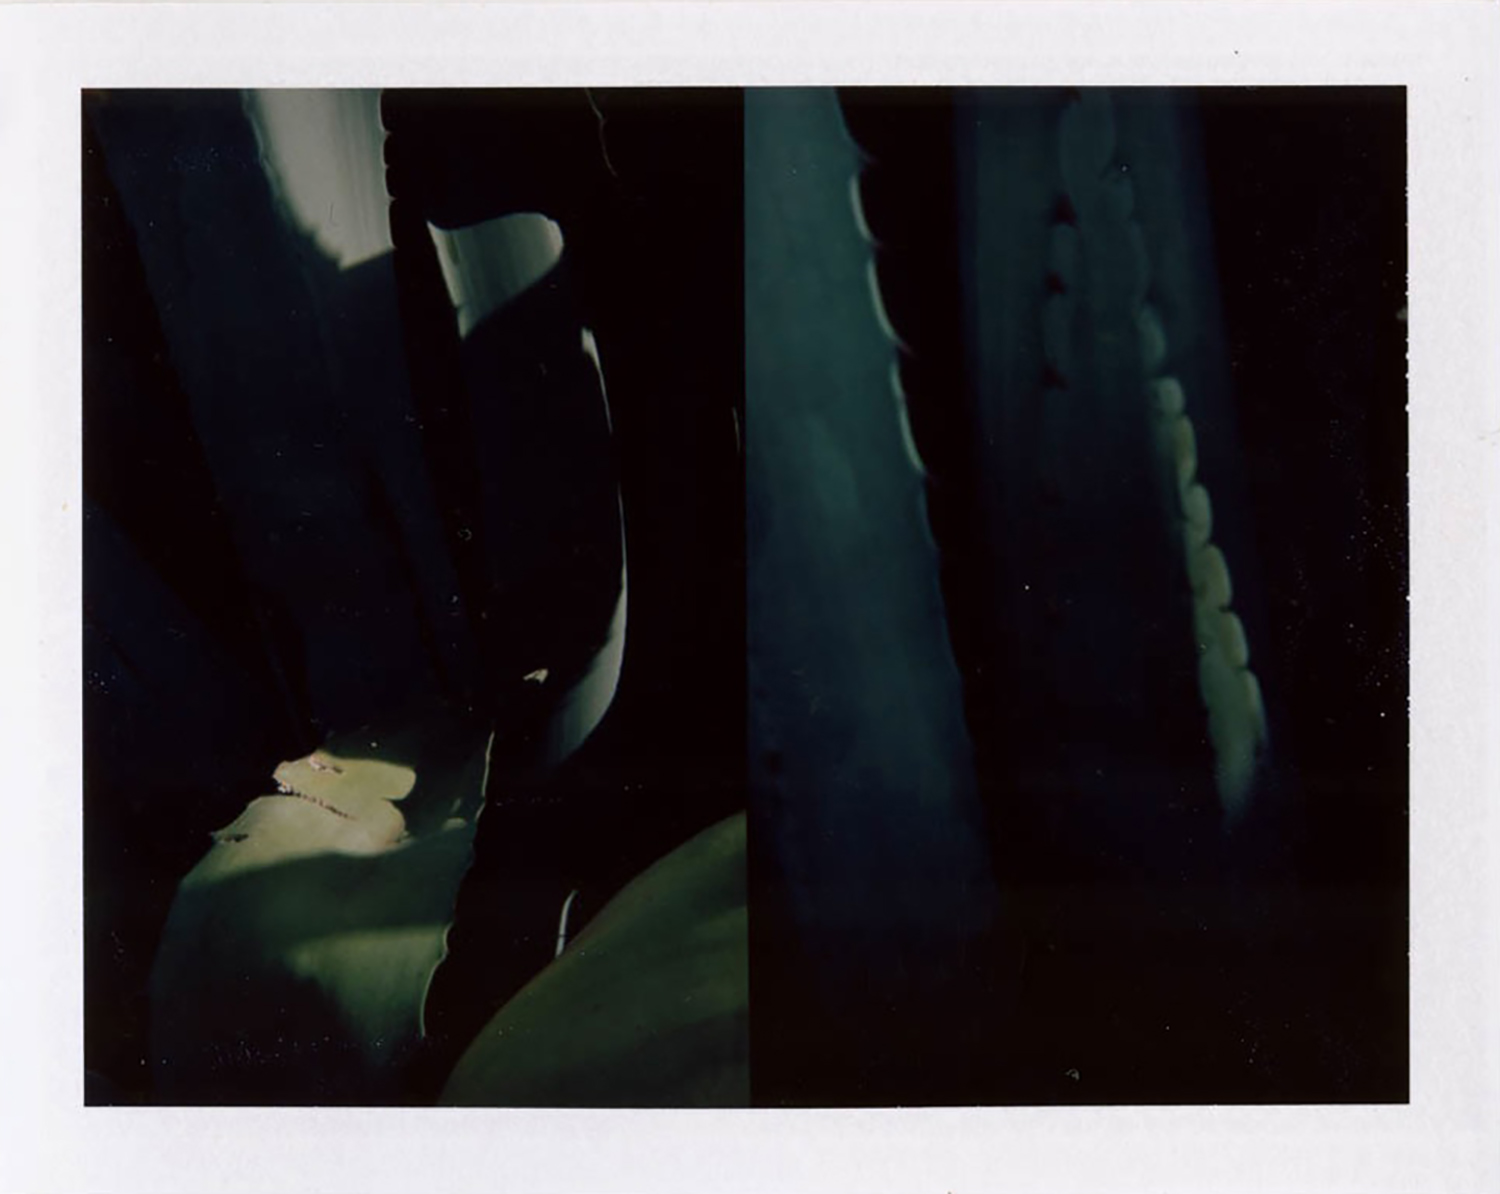 I.D.003, The Polaroid Revolutionary Workers, 2013, Polaroid Picture, 107mm x 86mm